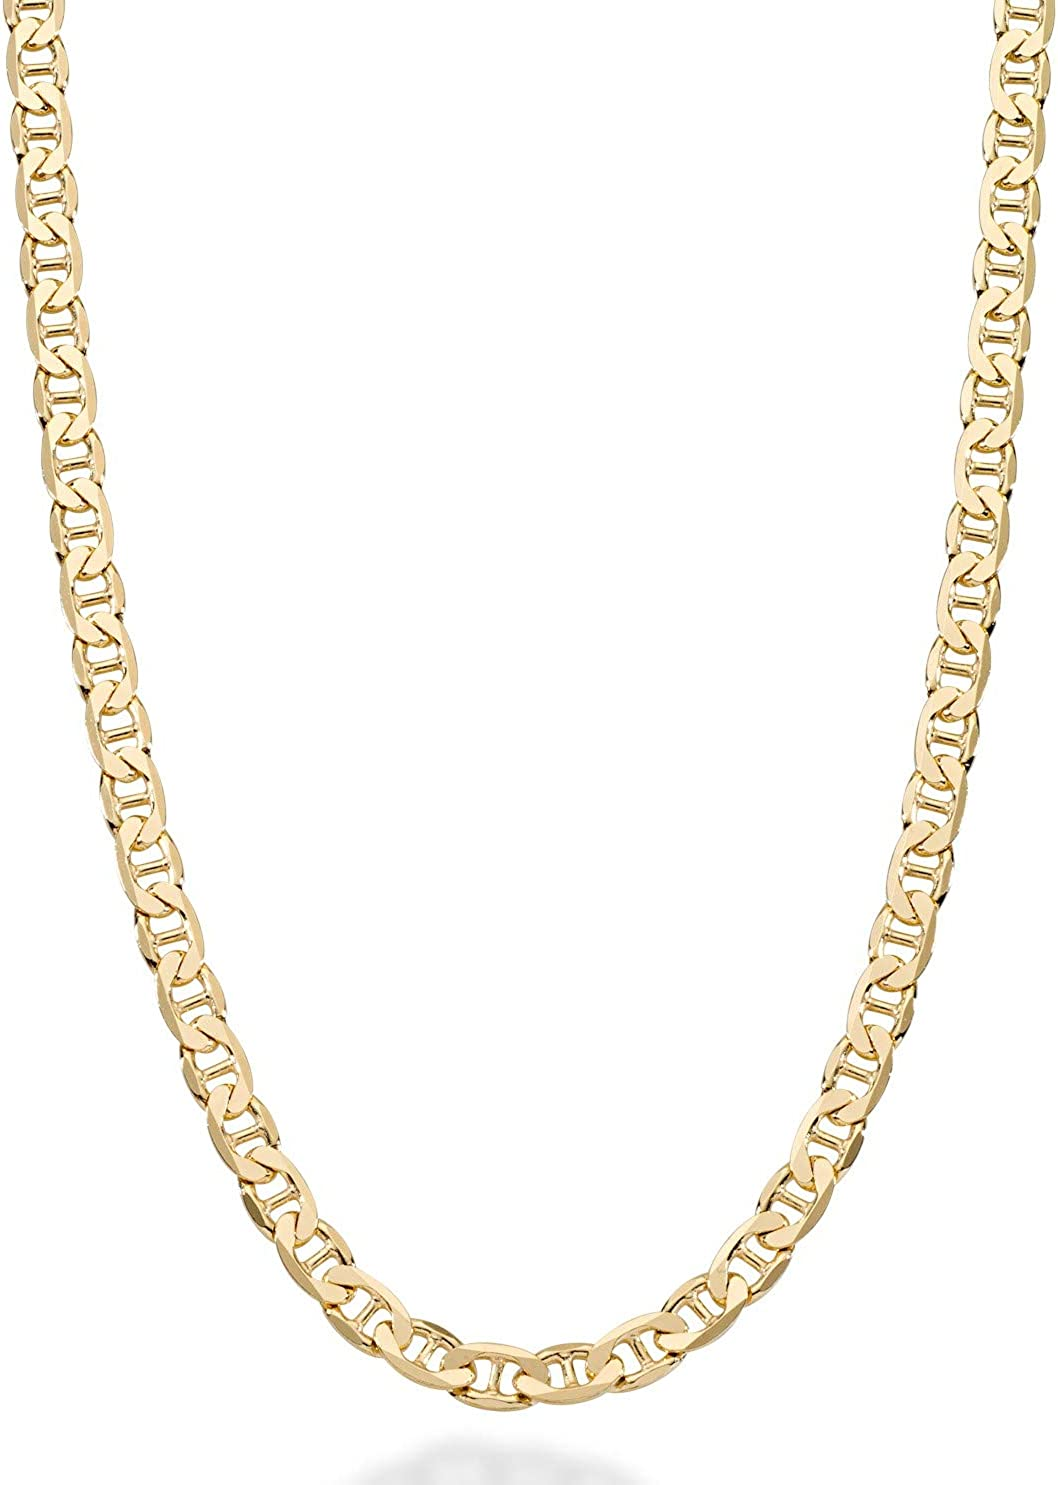 Miabella Solid 18K Gold Over Sterling Silver Italian 3mm, 4mm, 6mm Diamond-Cut Flat Mariner Link Chain Necklace for Women Men, 16-30 Inch 925 Italy